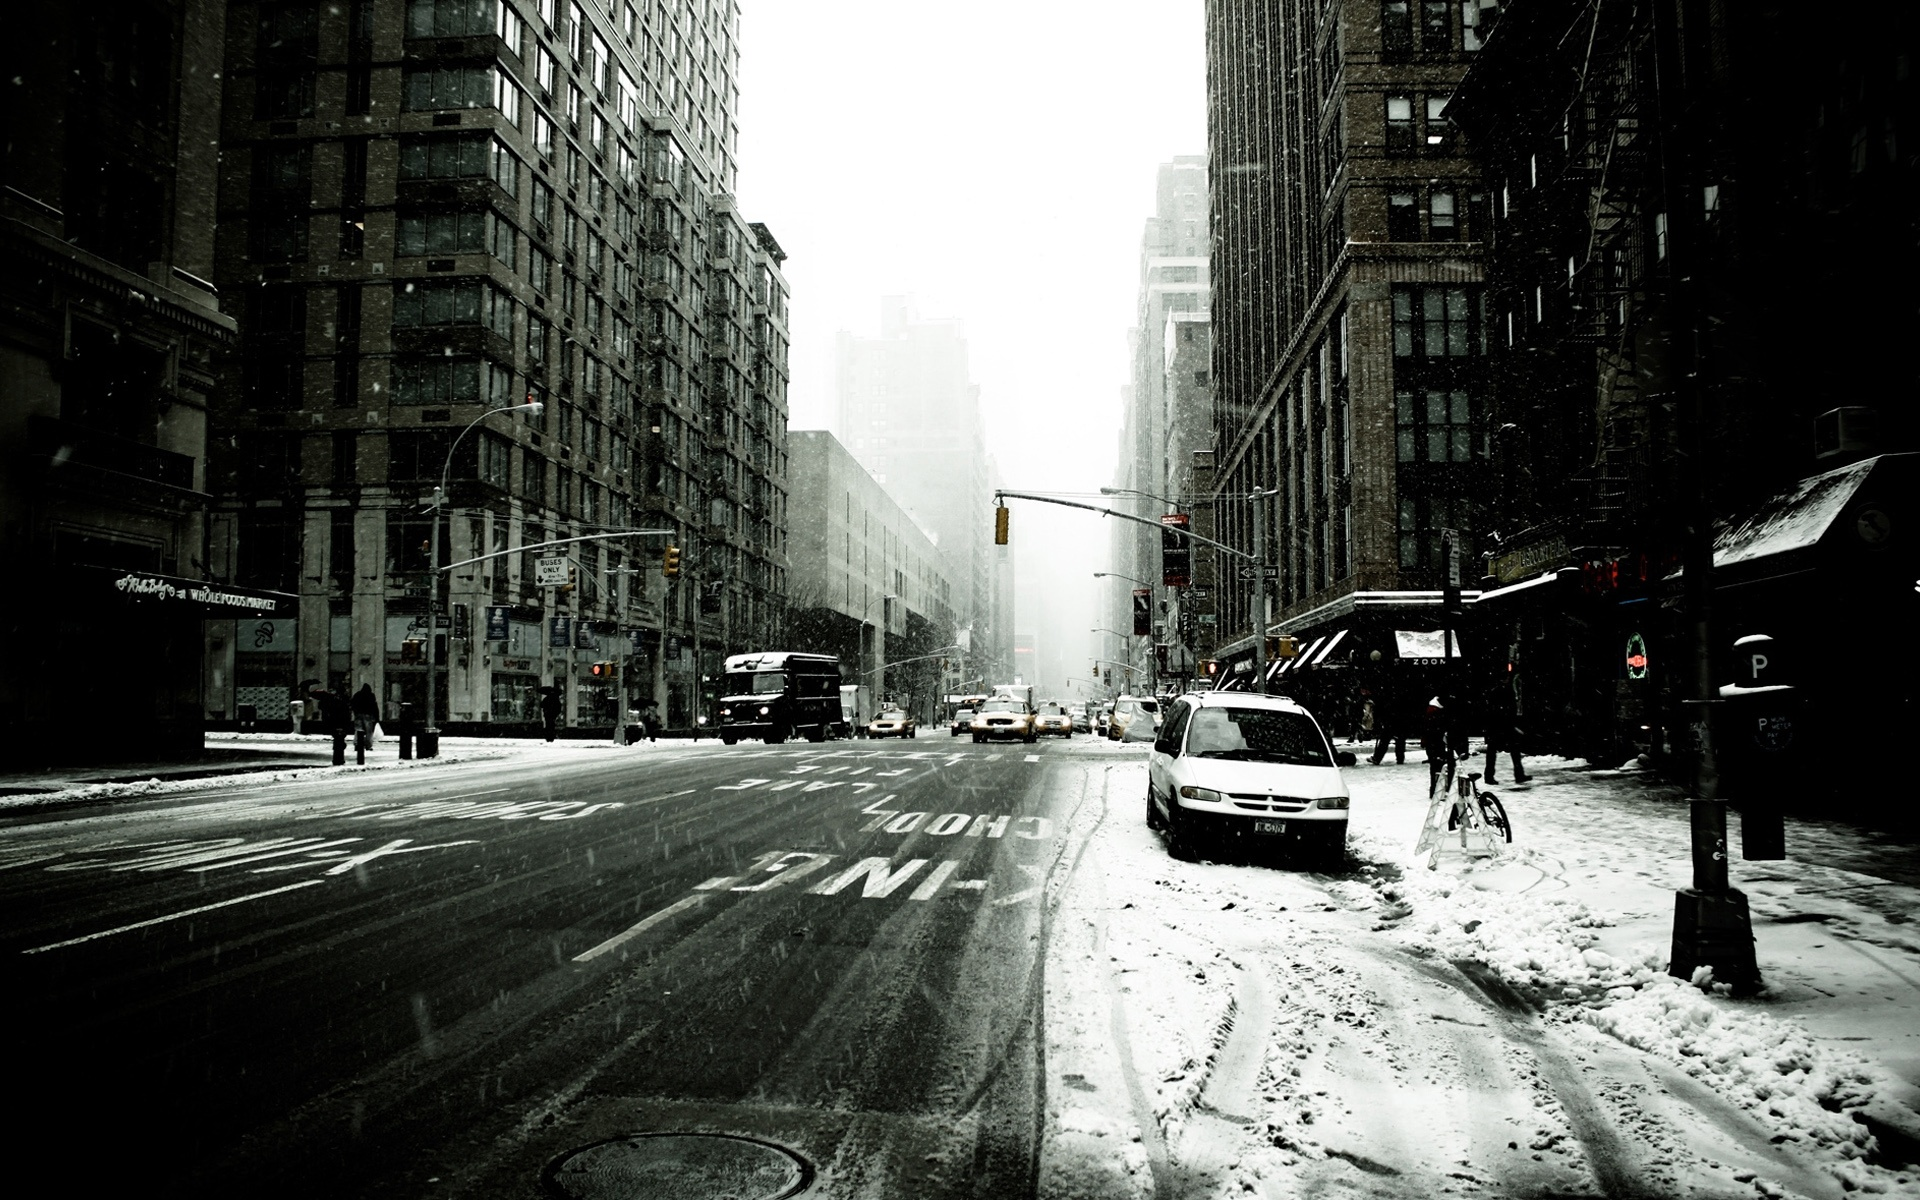 Wallpaper New York Street In Winter 1920x1200 Hd Picture Image